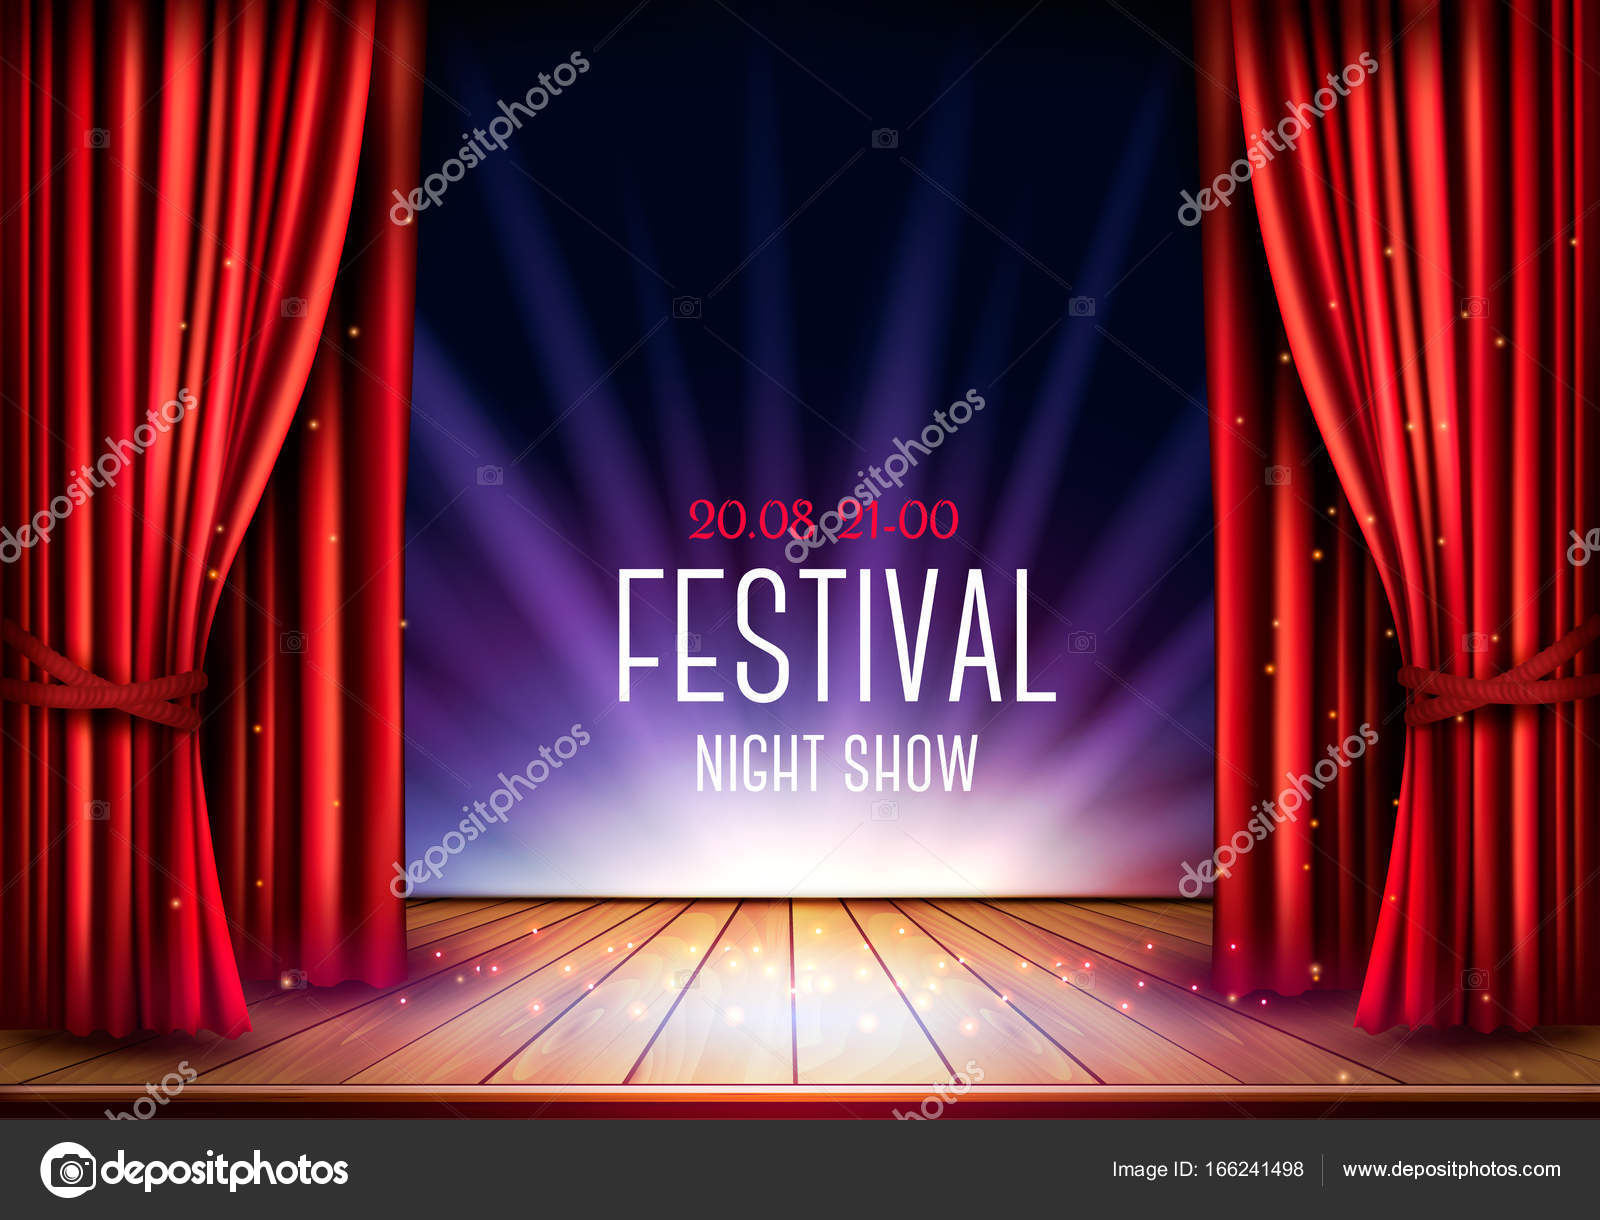 Stage curtains spotlight - A Theater Stage With A Red Curtain And A Spotlight Festival Nig Stock Vector